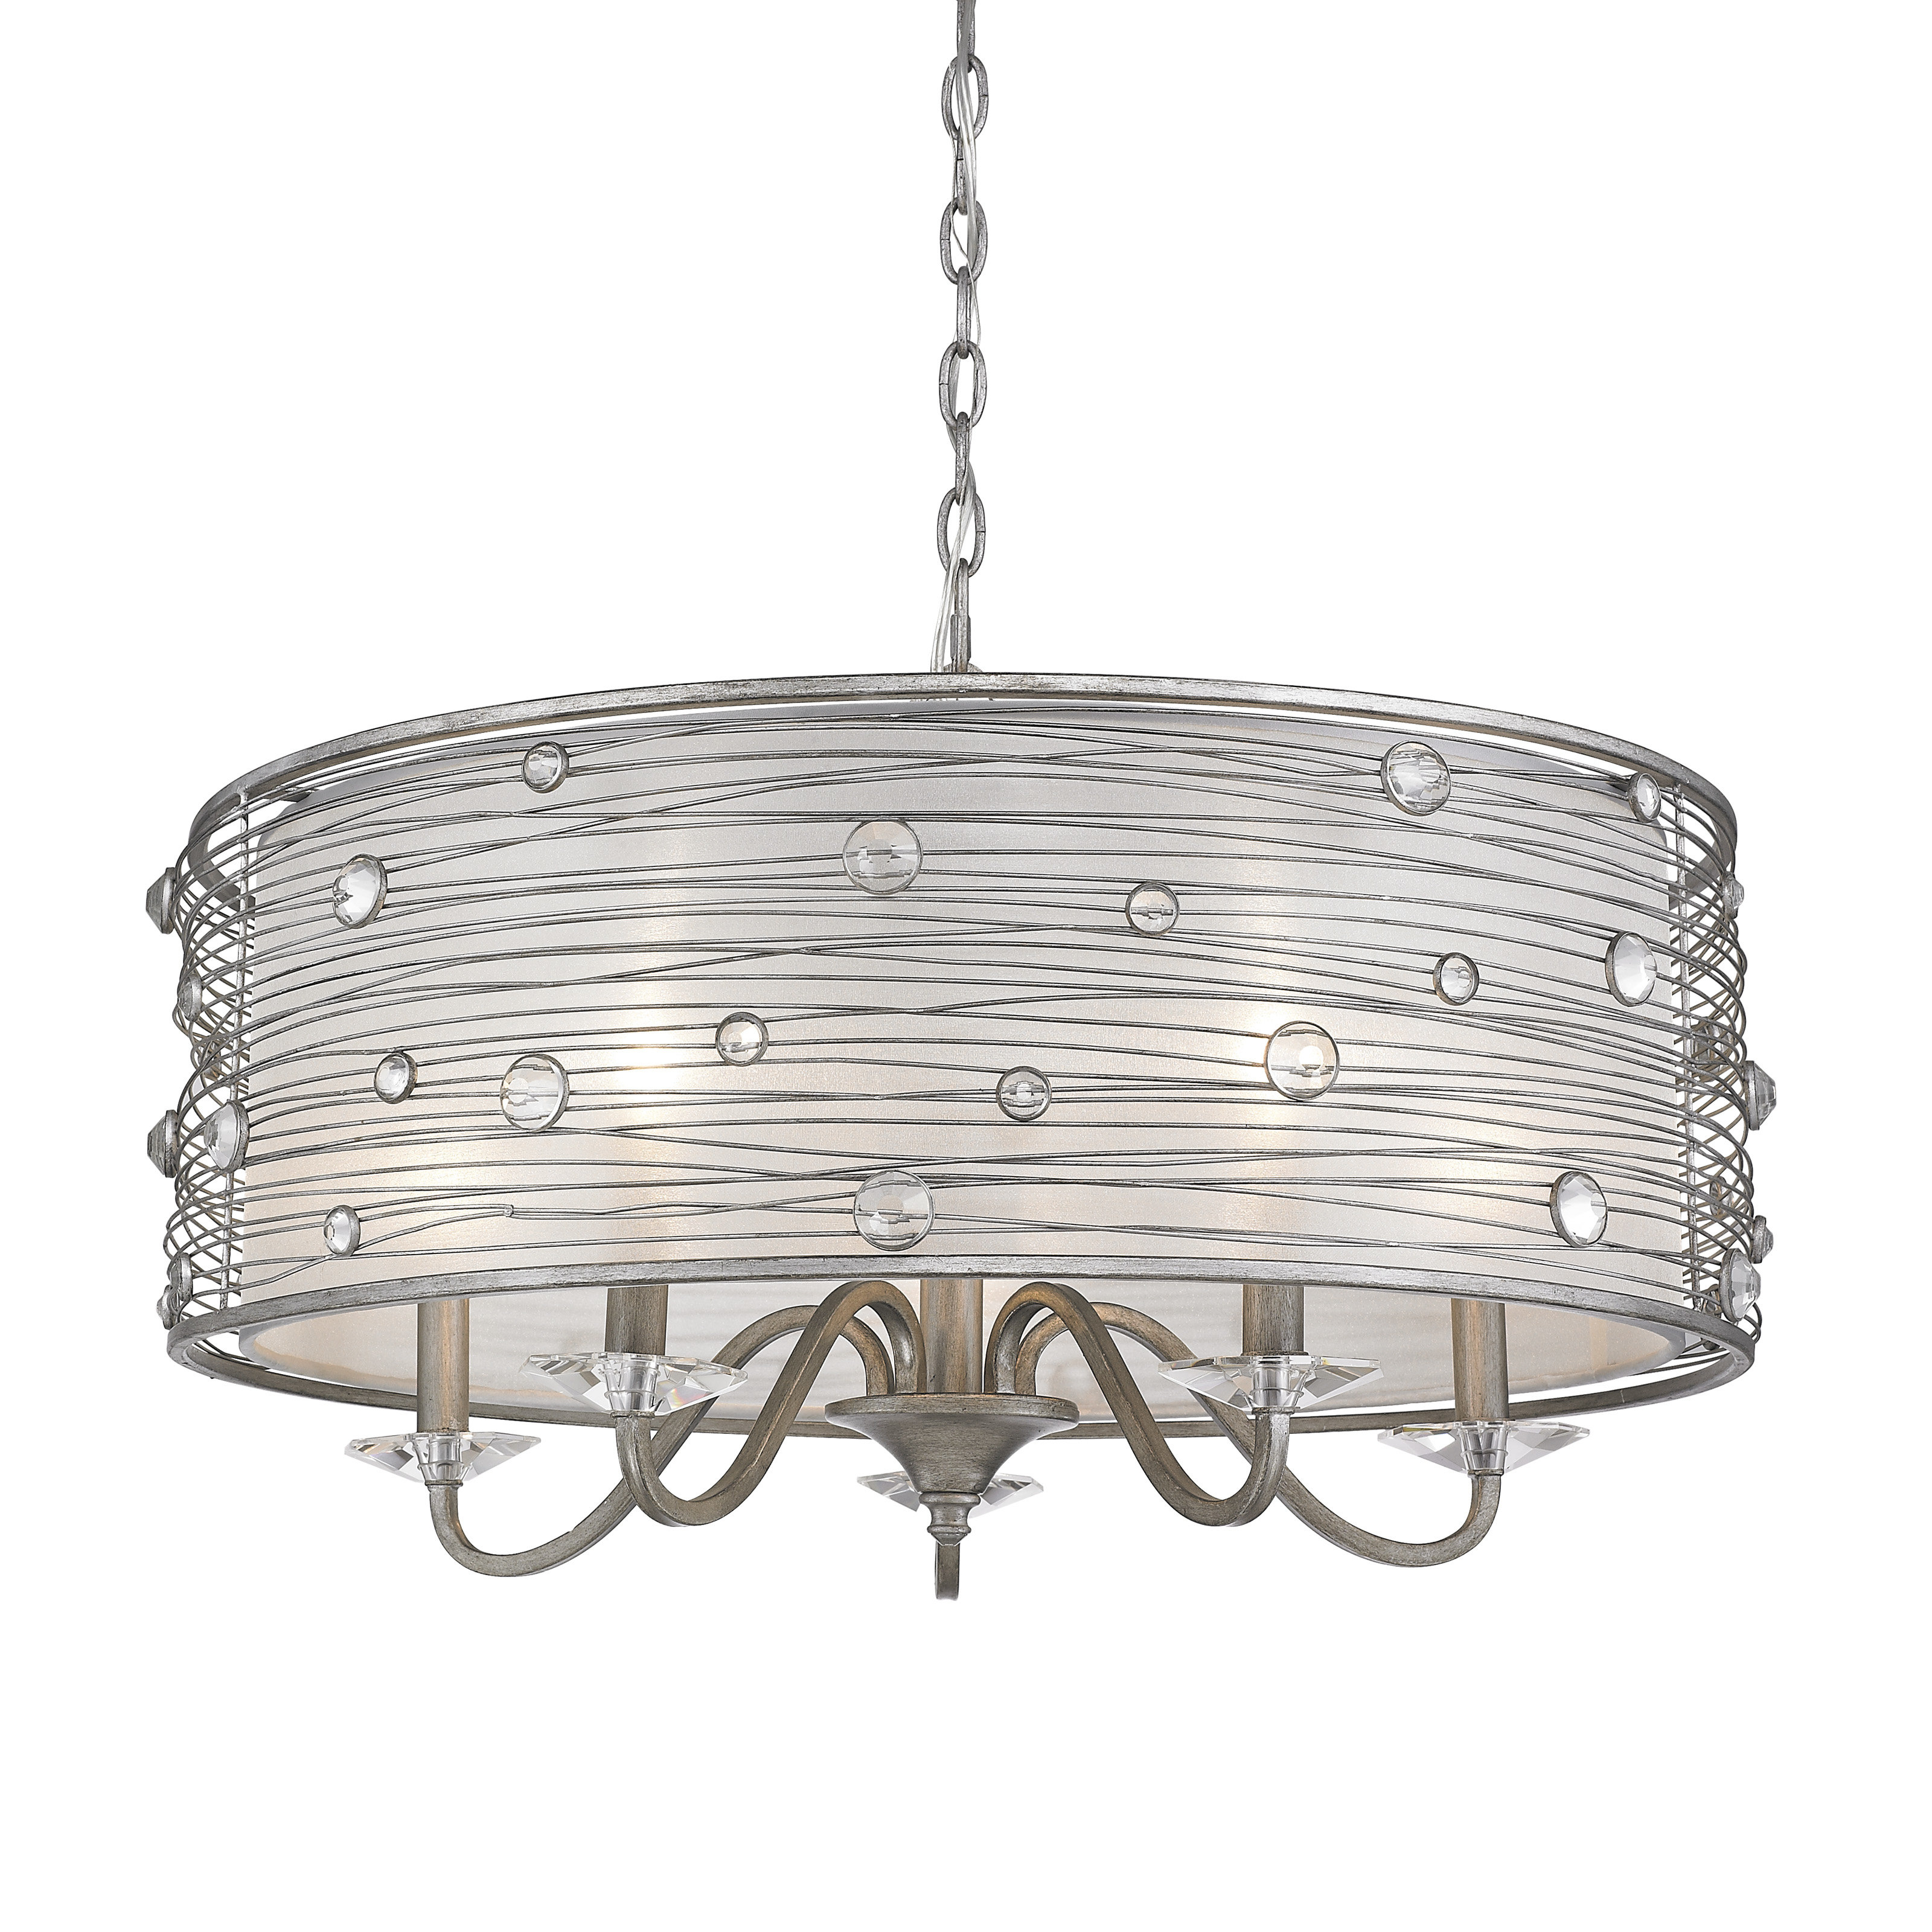 Hermione 5 Light Drum Chandeliers For Most Current Hermione 5 Light Drum Chandelier (Gallery 1 of 25)